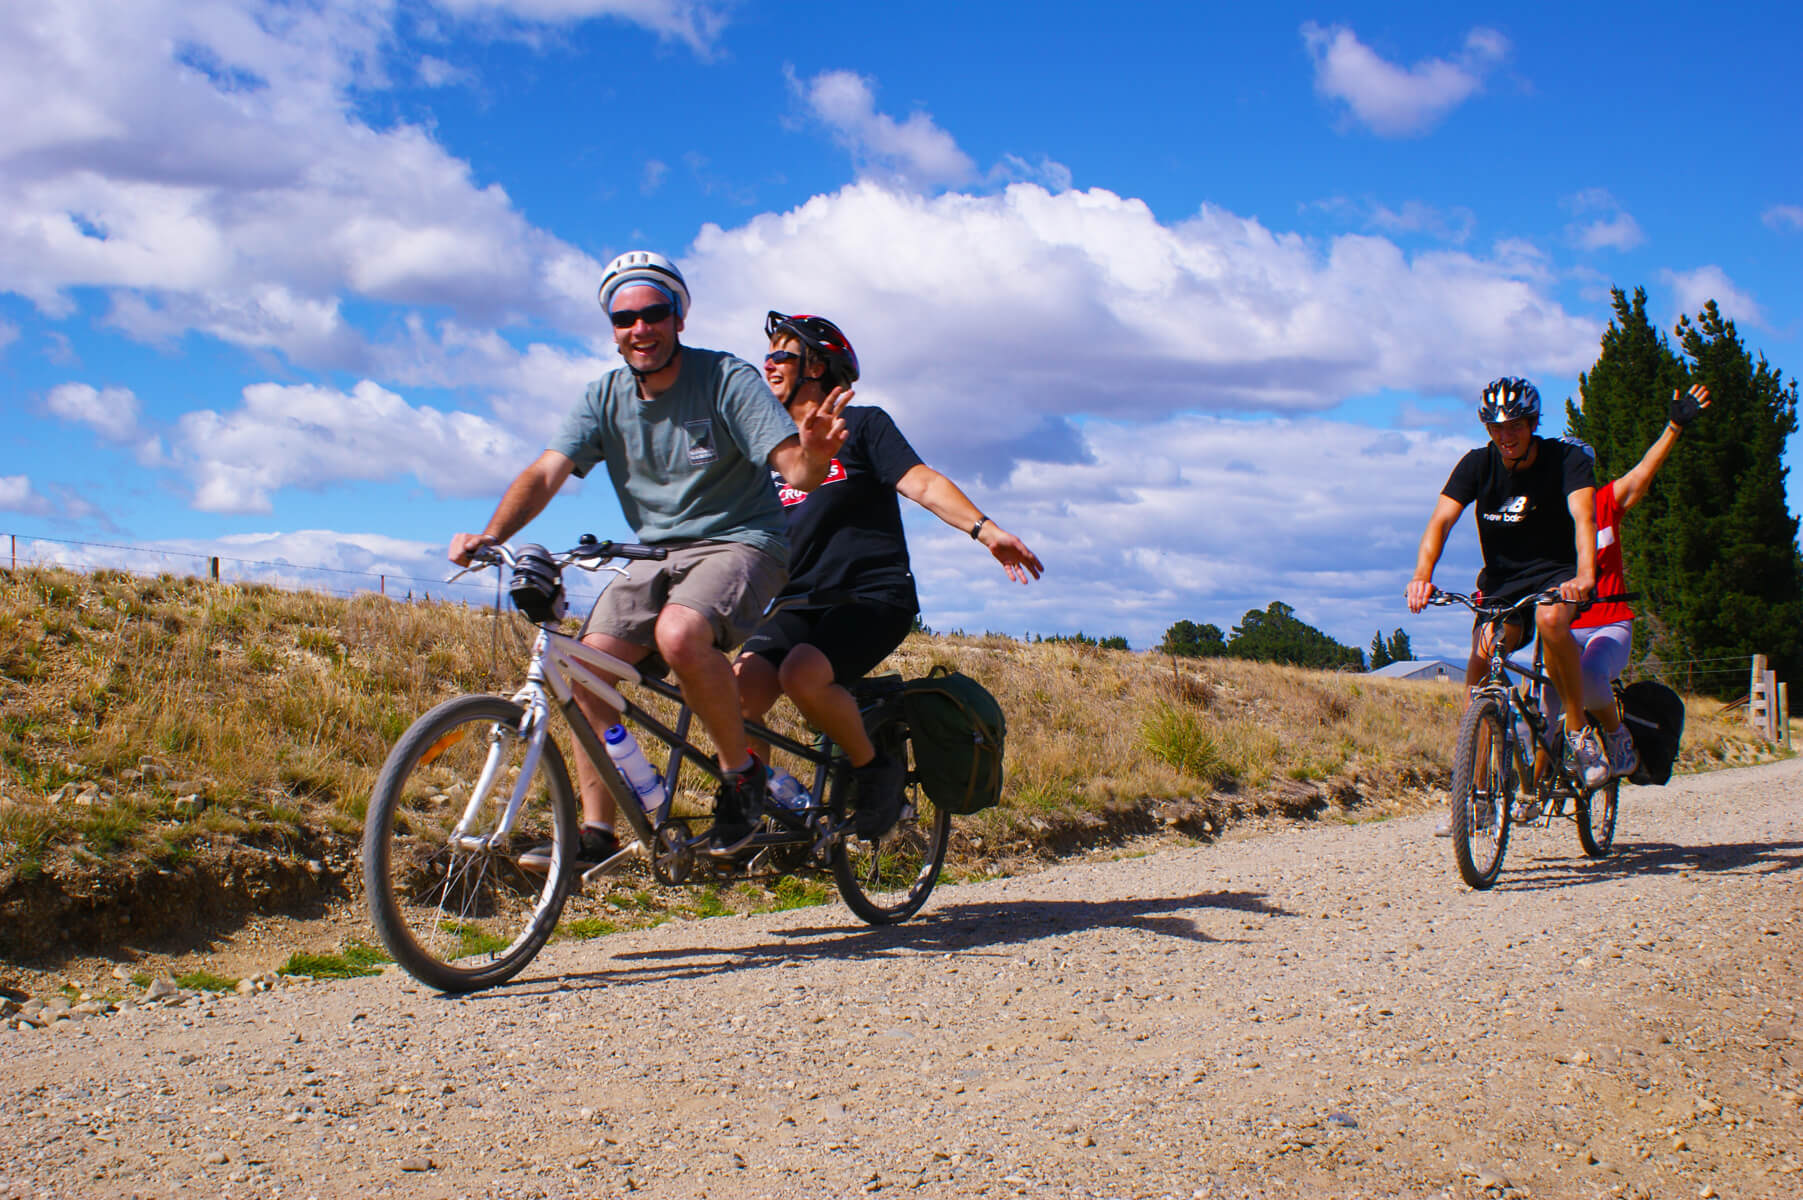 Vision impaired tandem cycling